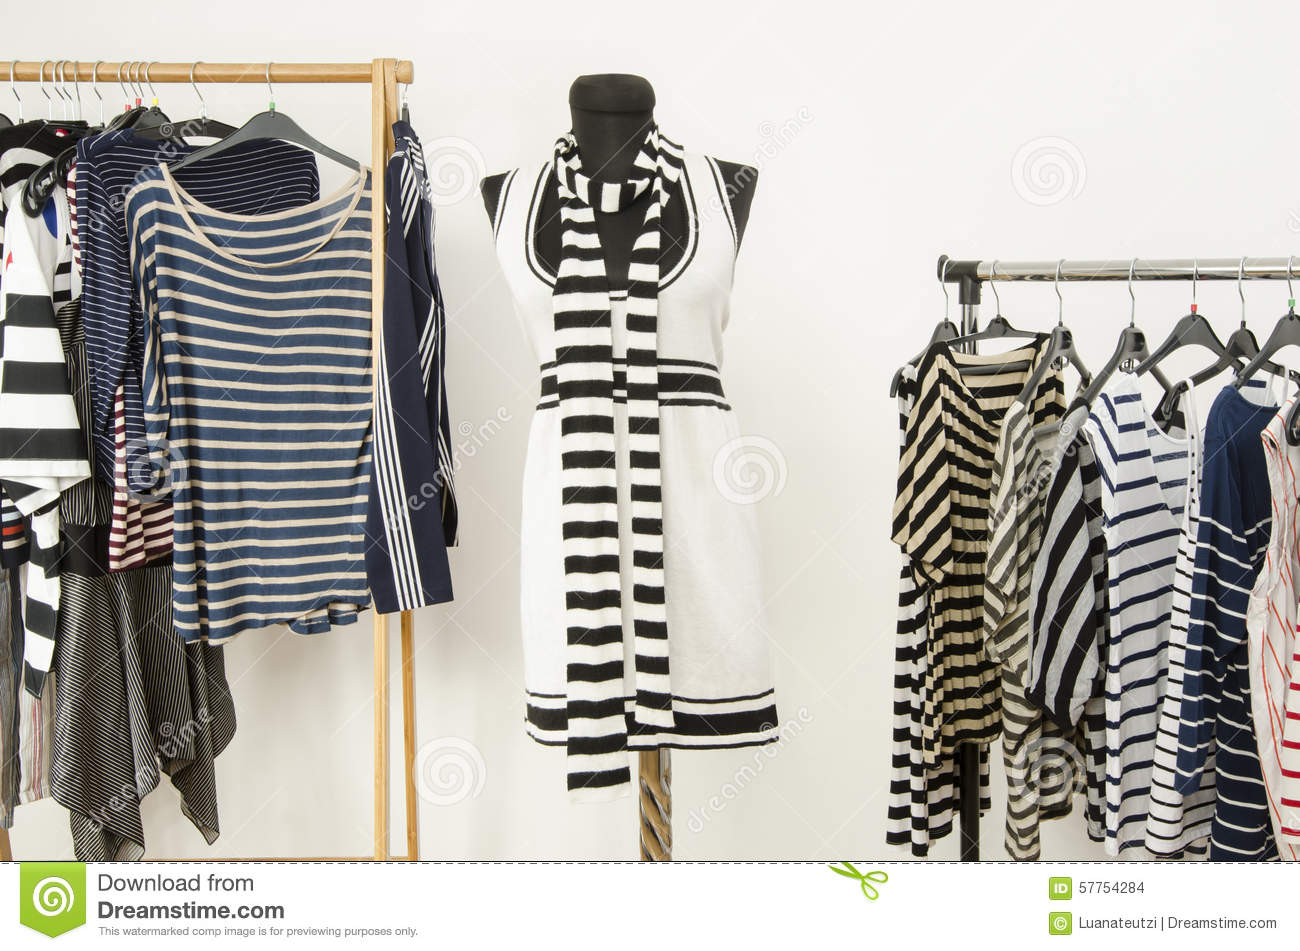 Dressing Closet With Striped Clothes Arranged On Hangers